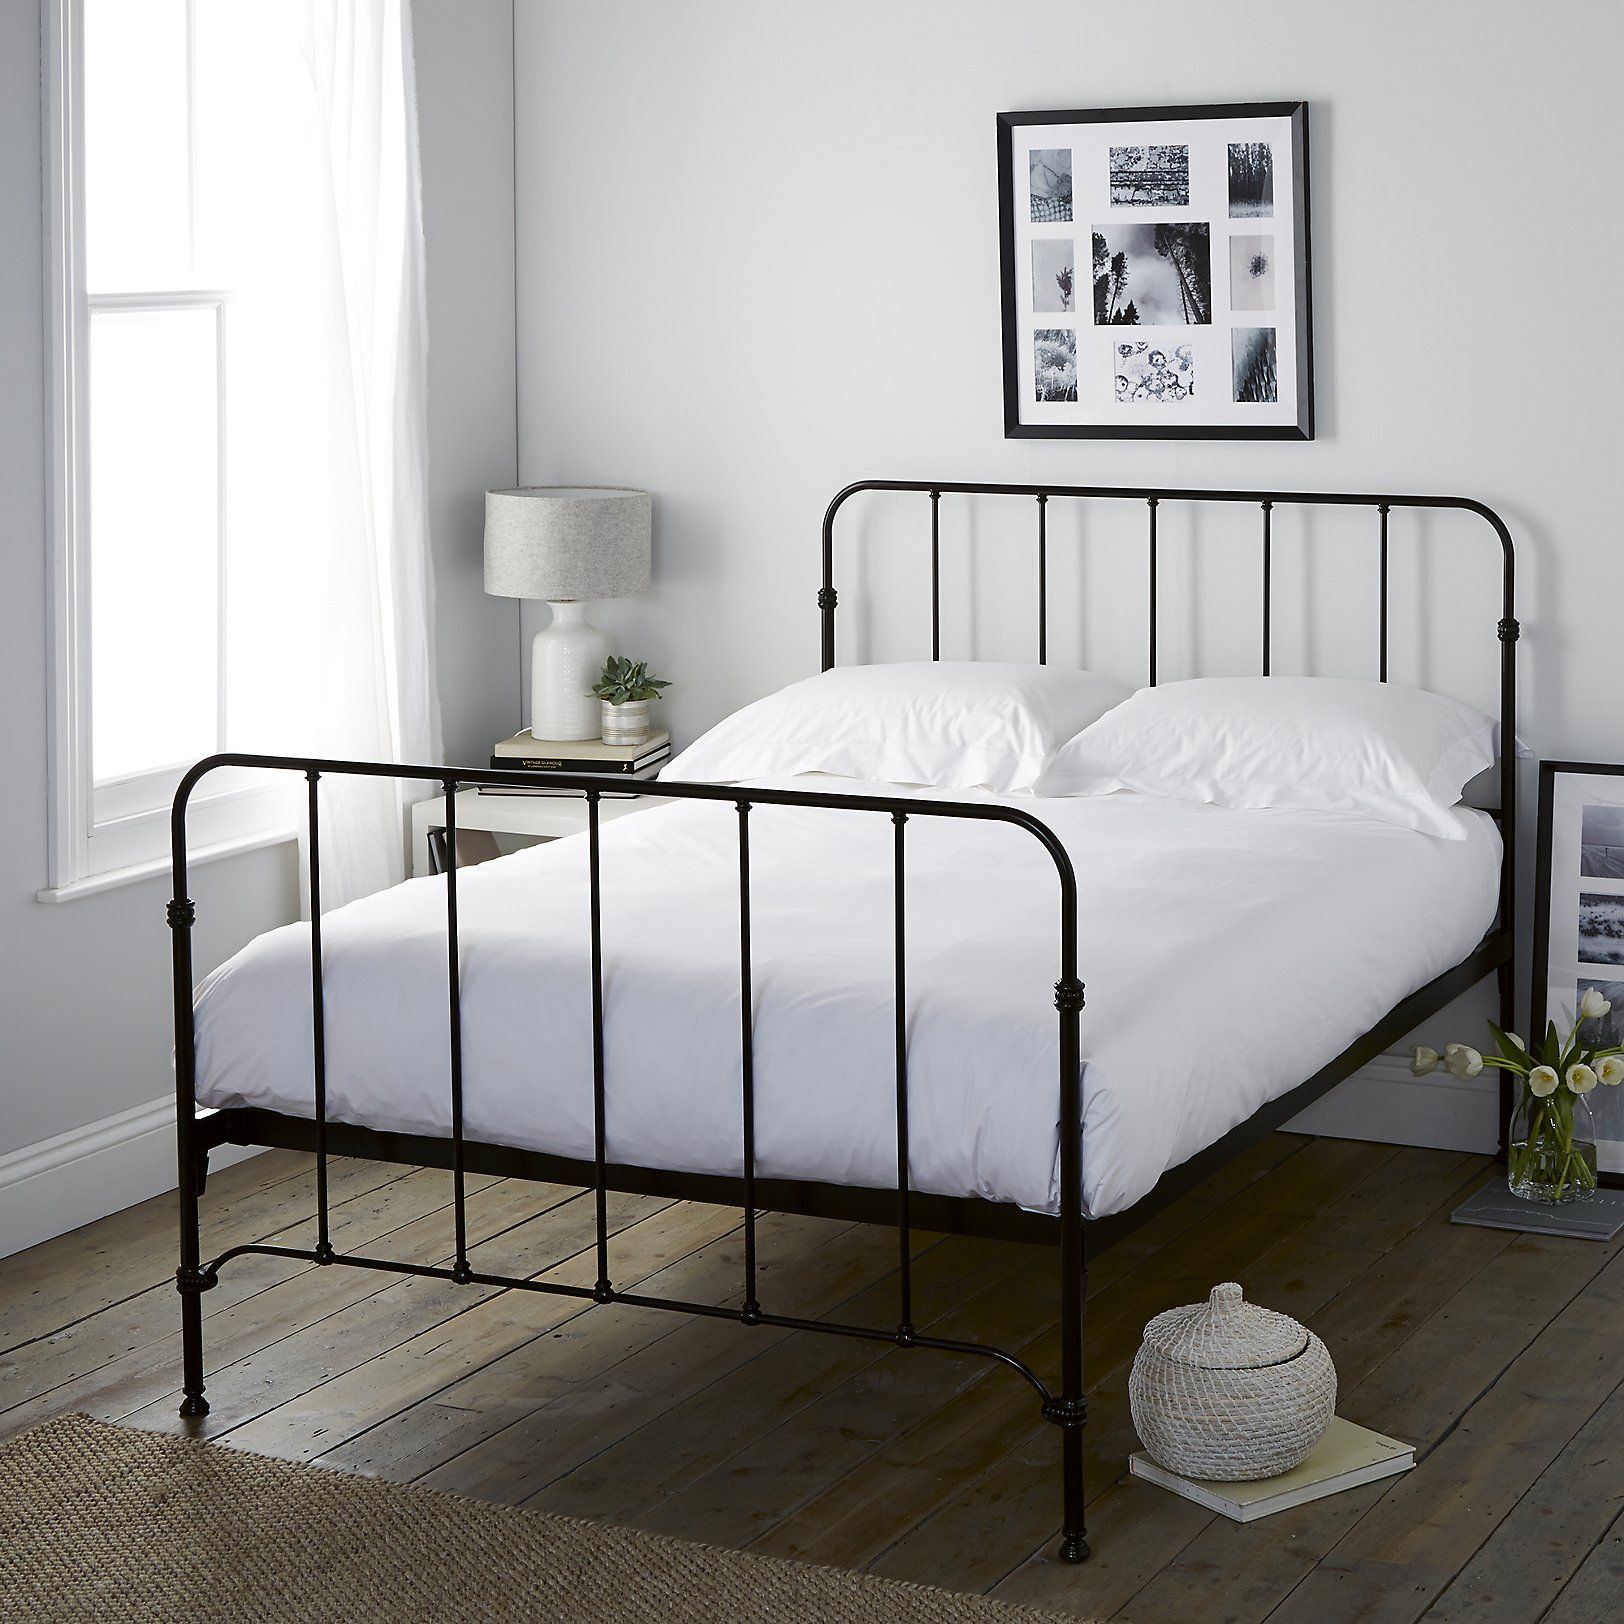 Stamford Bed Beds Furniture Home The White Company Uk